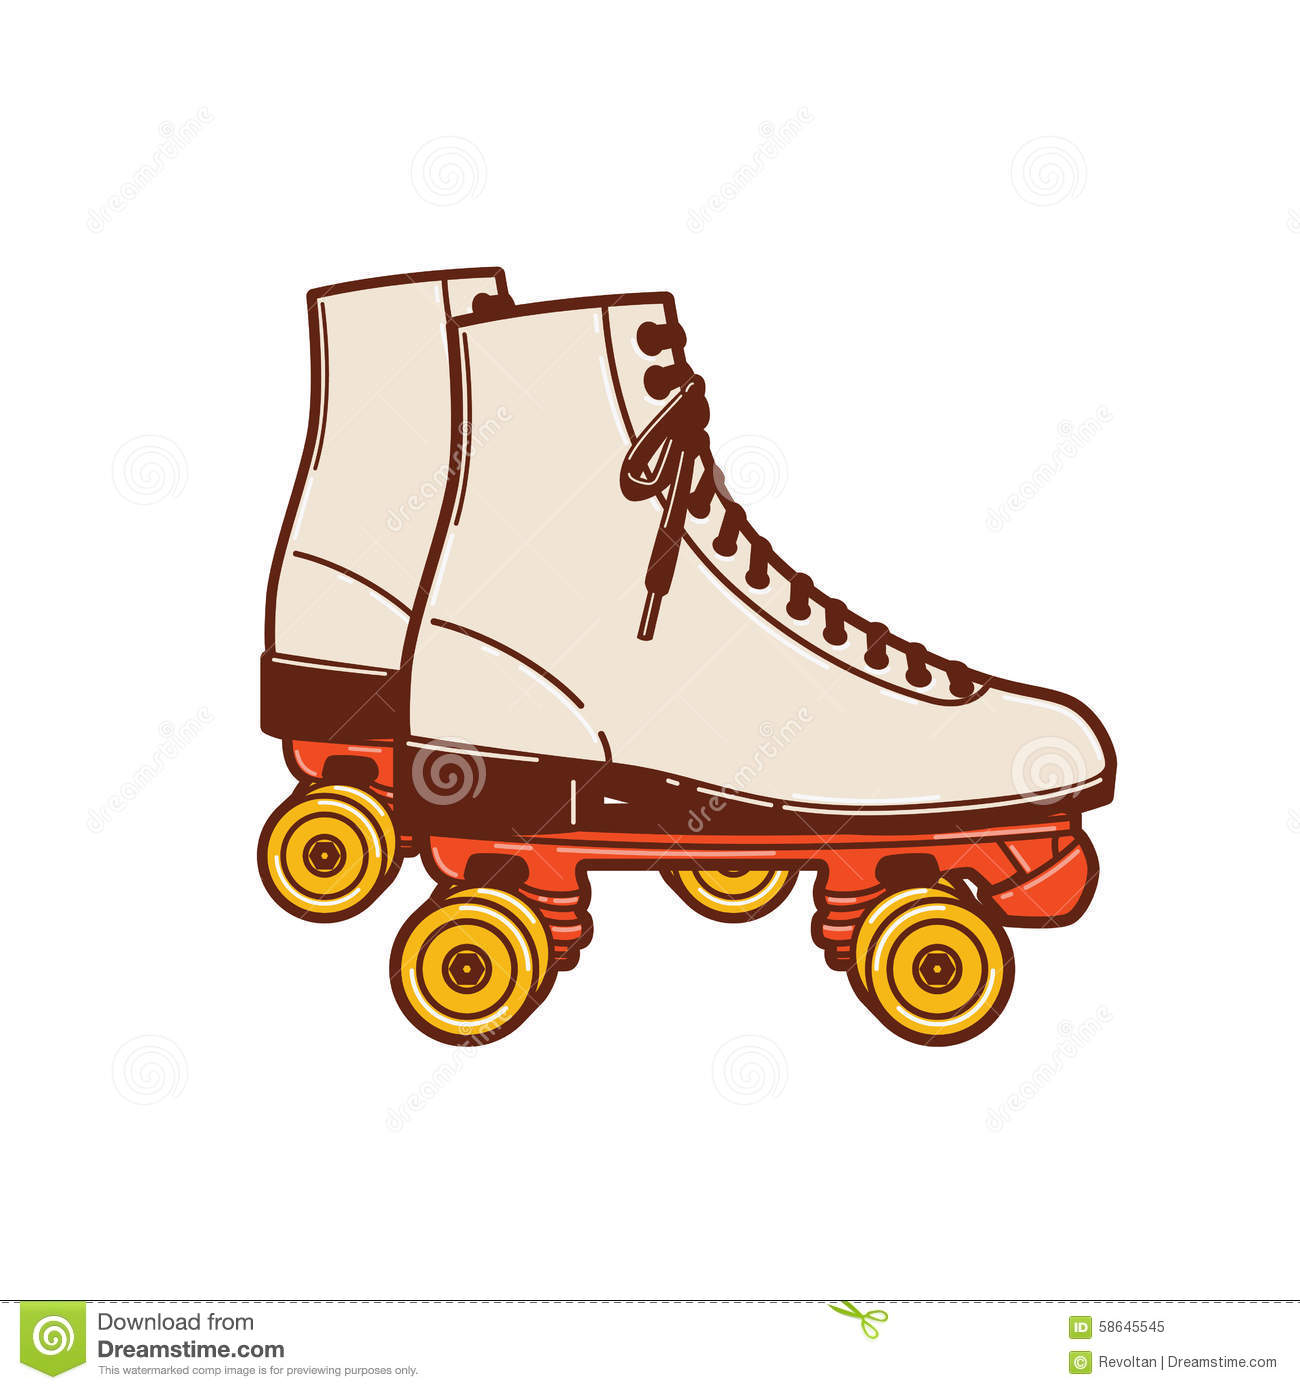 Roller skates in the 70s - A Roller Skate Classic Commonly Used And Popular In The 70s And